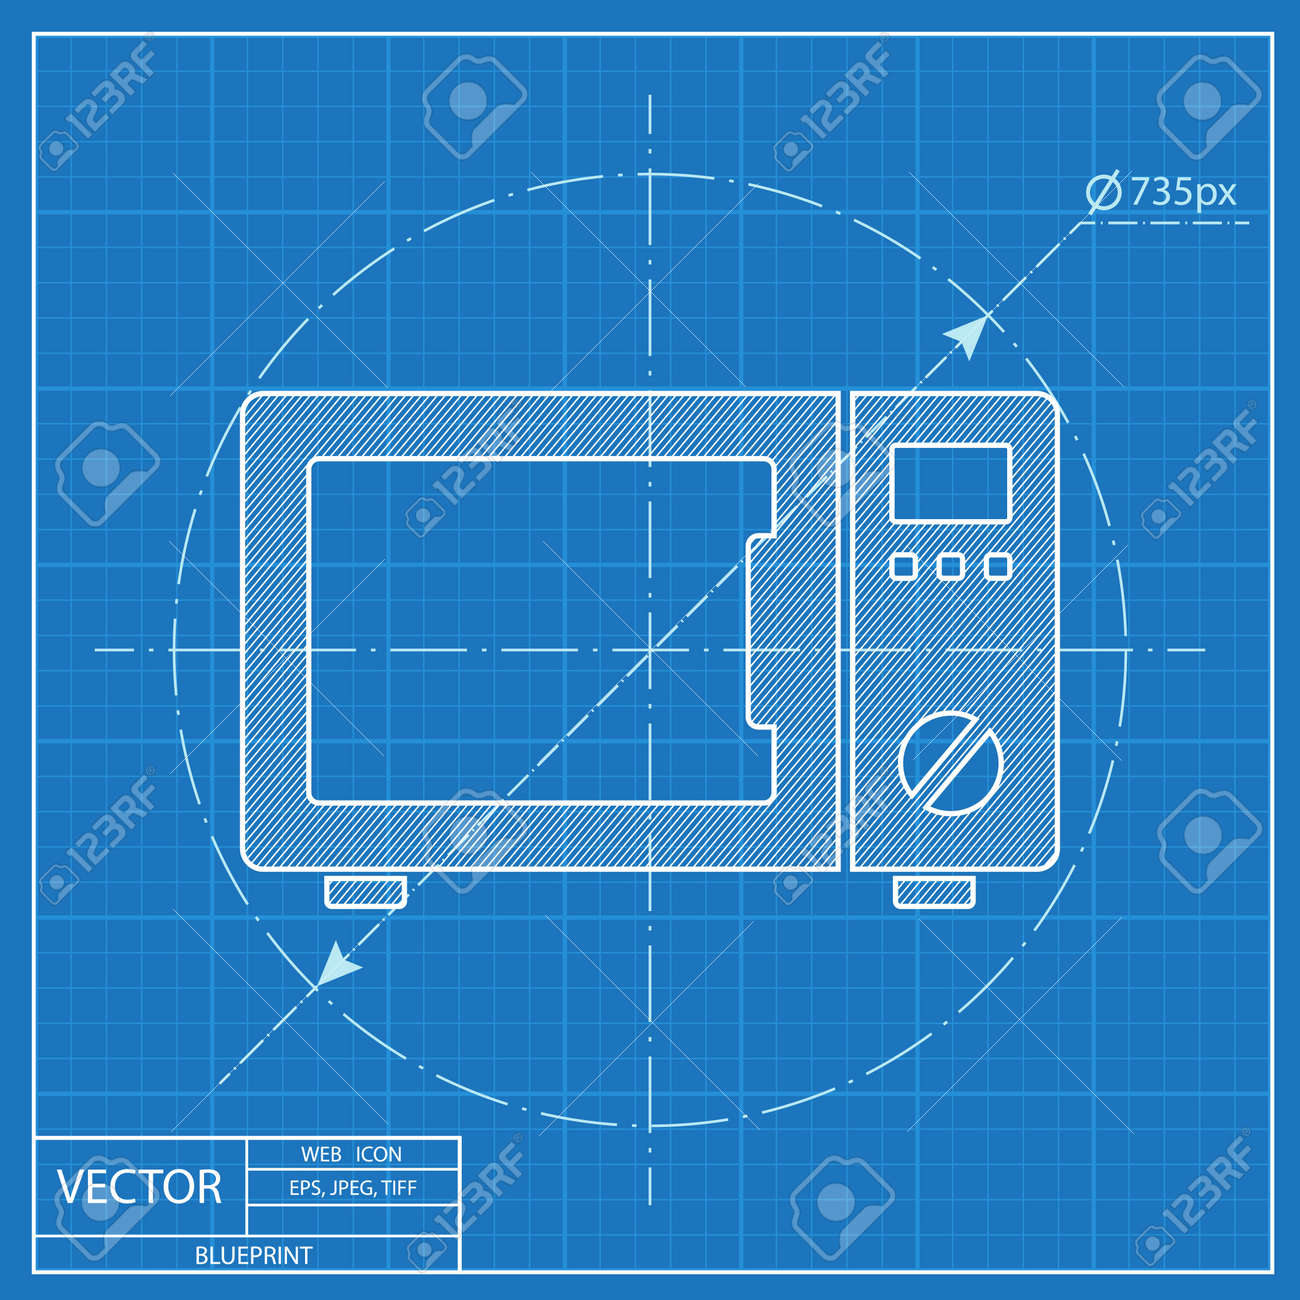 Blueprint Icon Of Microwave Oven Royalty Free Cliparts, Vectors, And ...